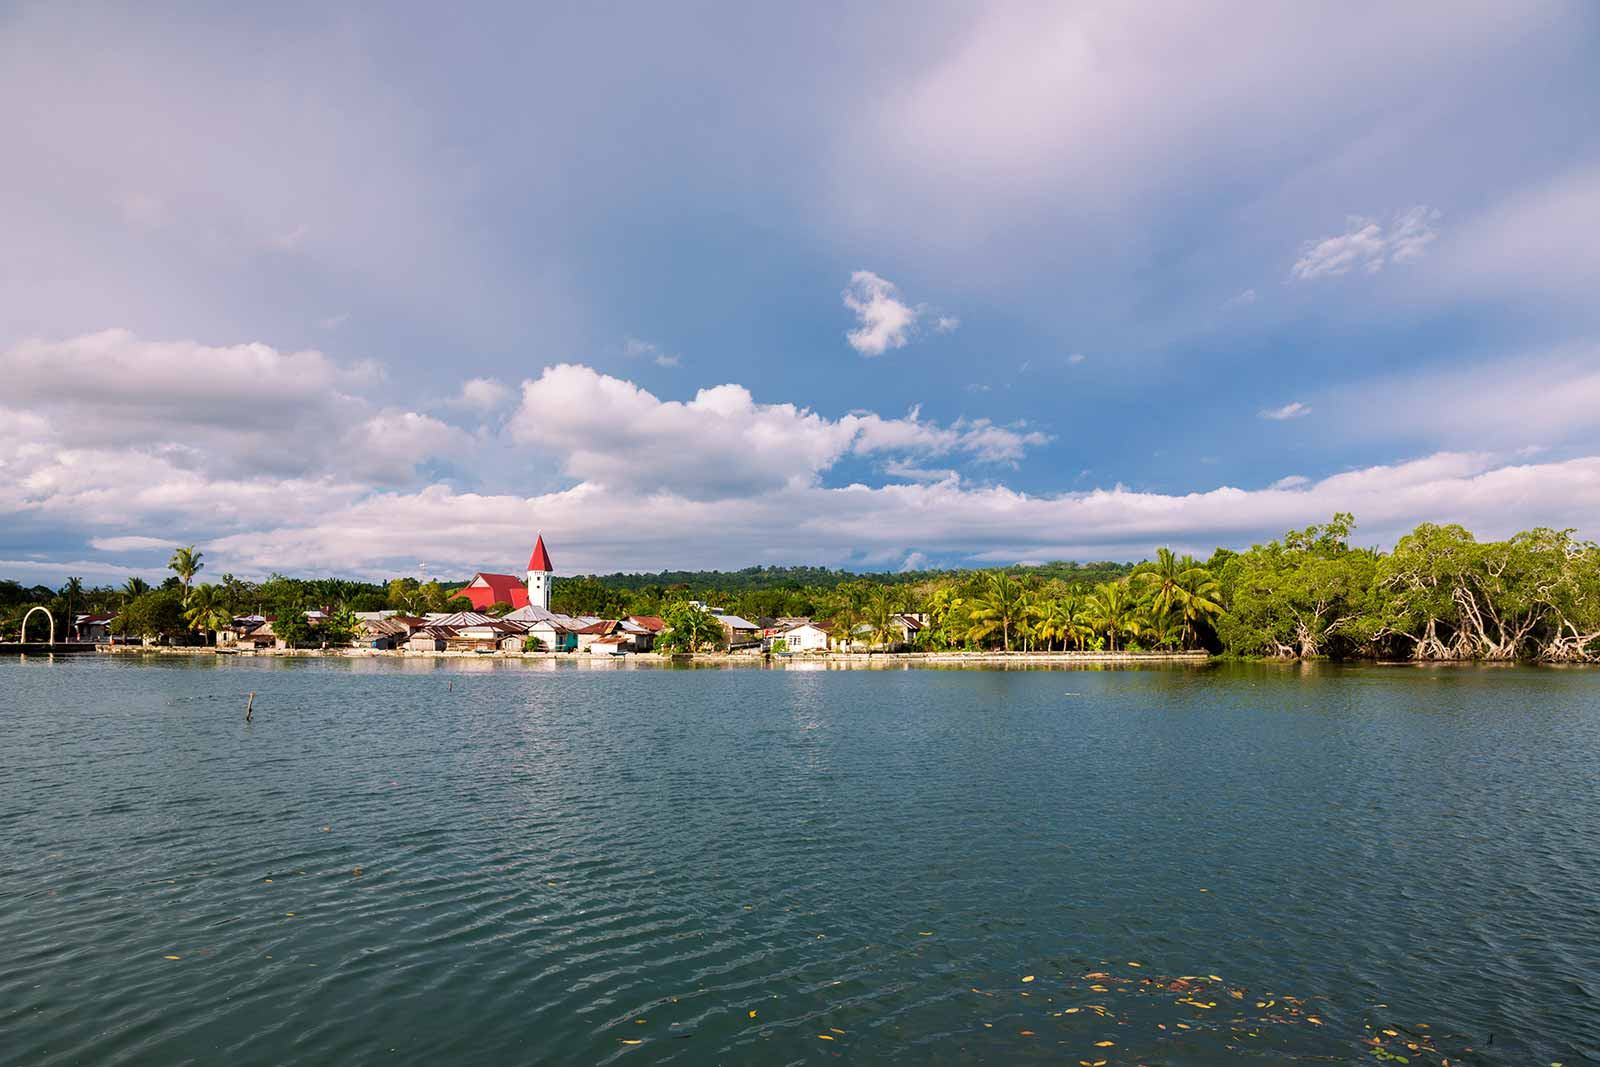 Maluku Islands: From Haria, the main town on Saparua island, you'll pretty much get anywhere on the island.